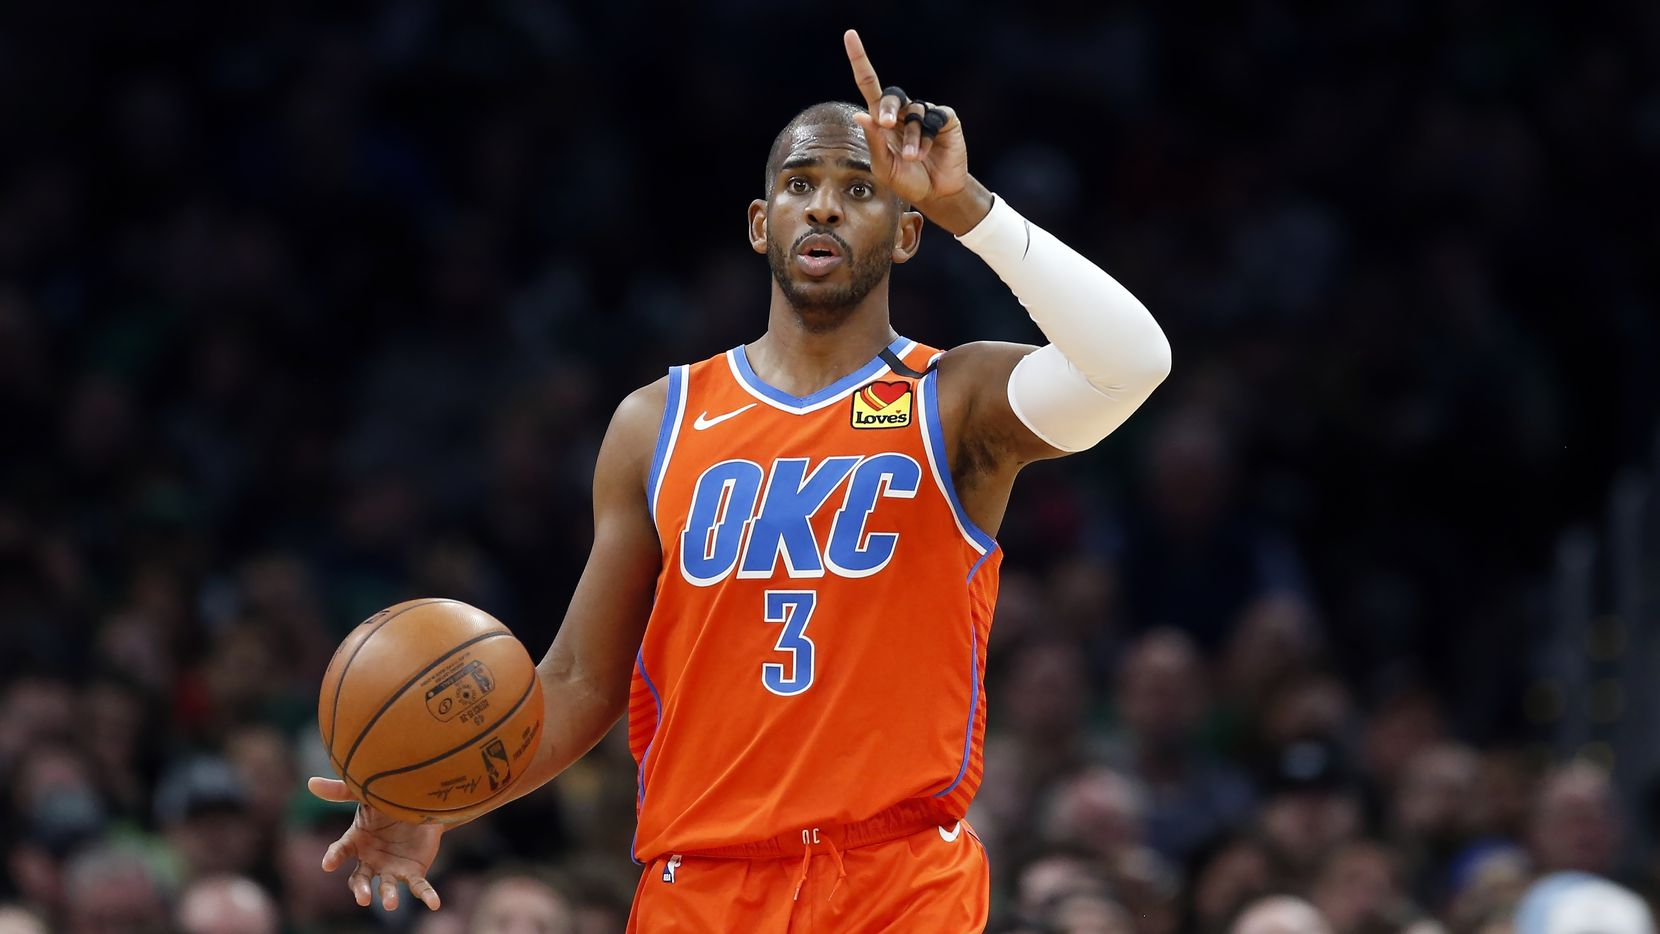 FILE - In this March 8, 2020 photo, the Oklahoma City Thunder's Chris Paul plays against the Celtics during a game in Boston.